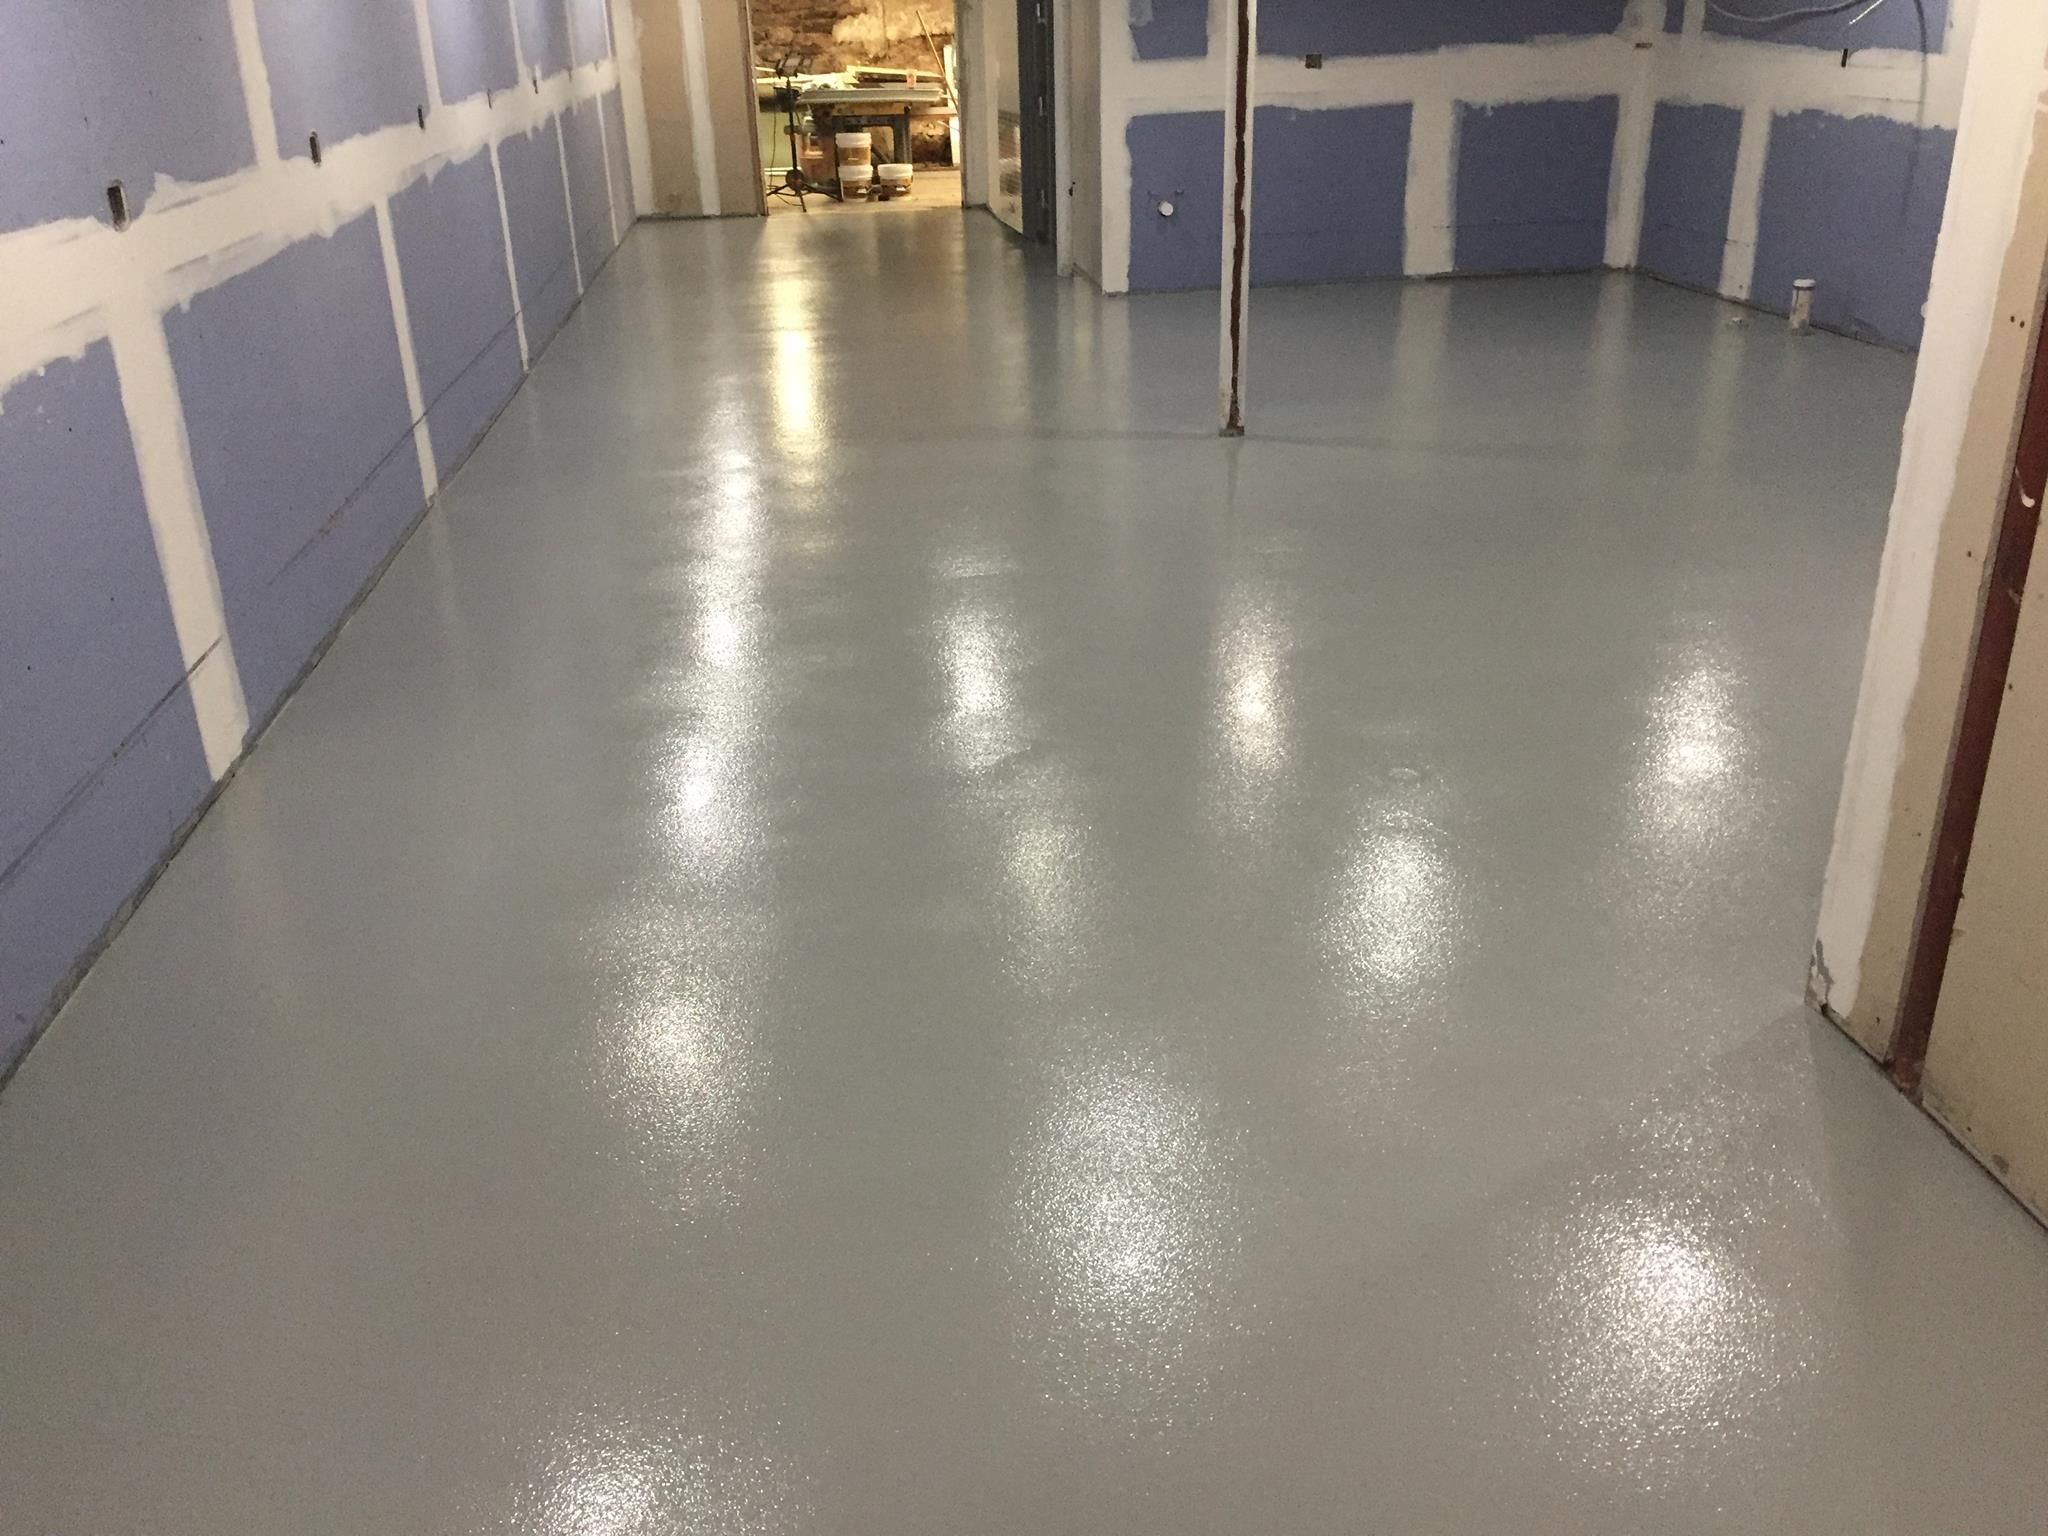 Epoxy Flooring Ct For Your Commercial Or Industrial Epoxy Floor Coating Ct Requirements Feel Free To Ca Kitchen Flooring Epoxy Floor Flooring Contractor